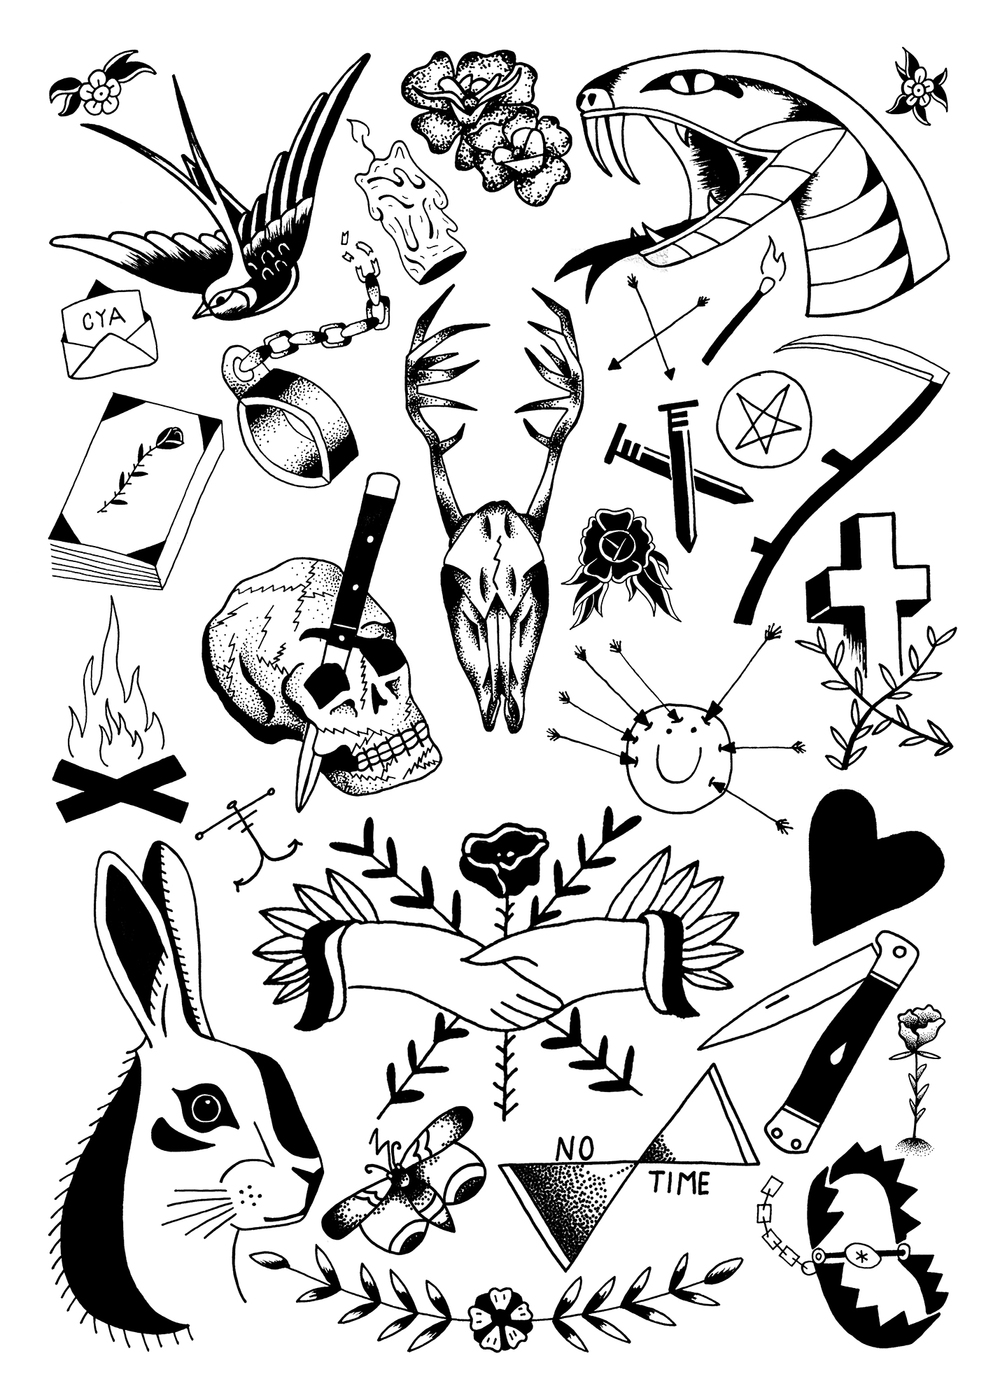 ScreenPrint_Design_TattooFlash_01.jpg